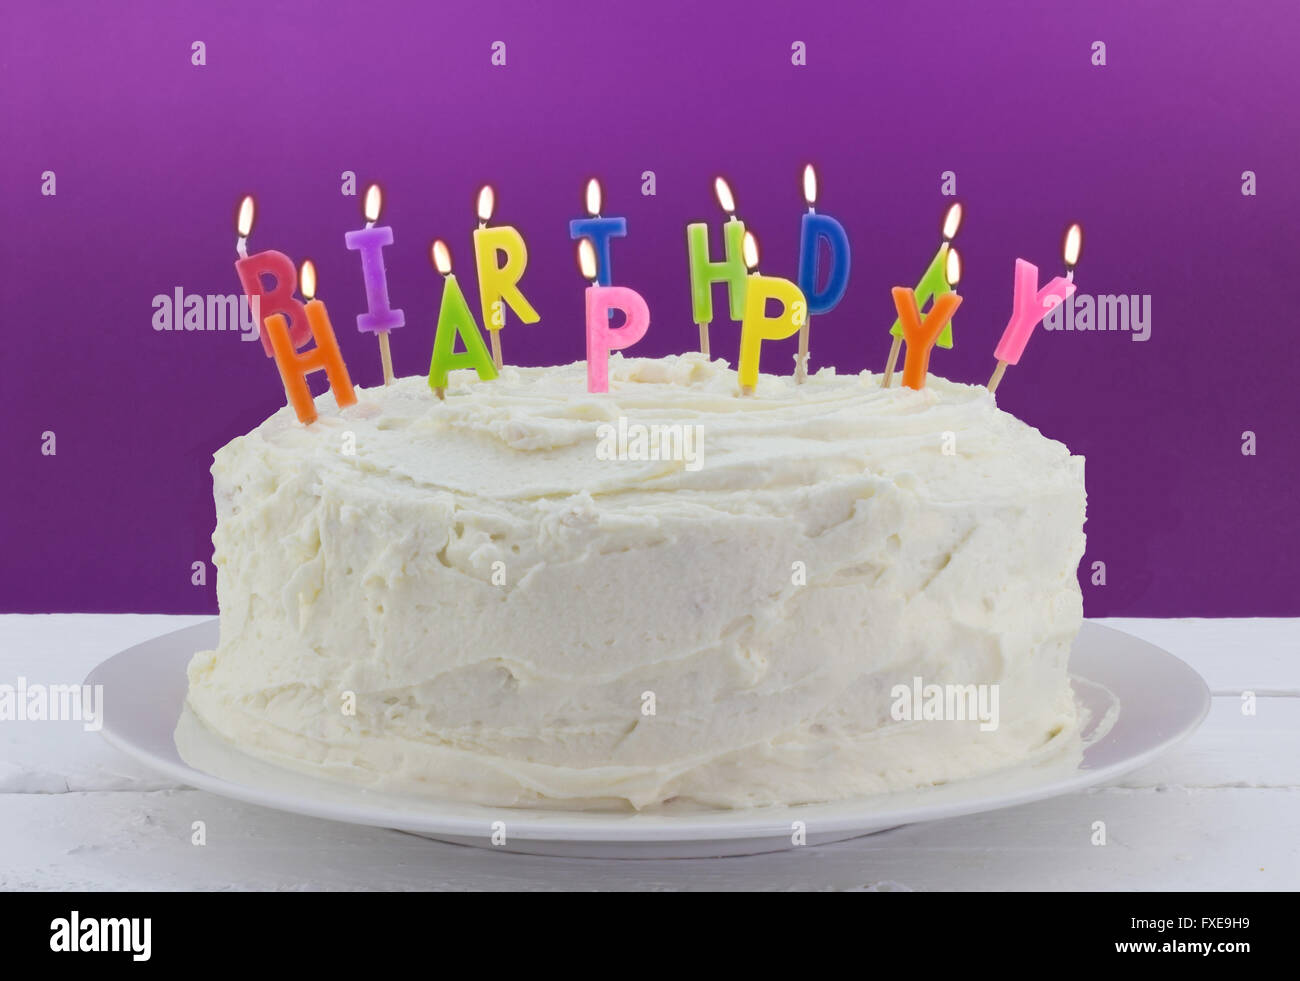 Birthday Cake On White Table With Candles Stock Photo 102347765 Alamy